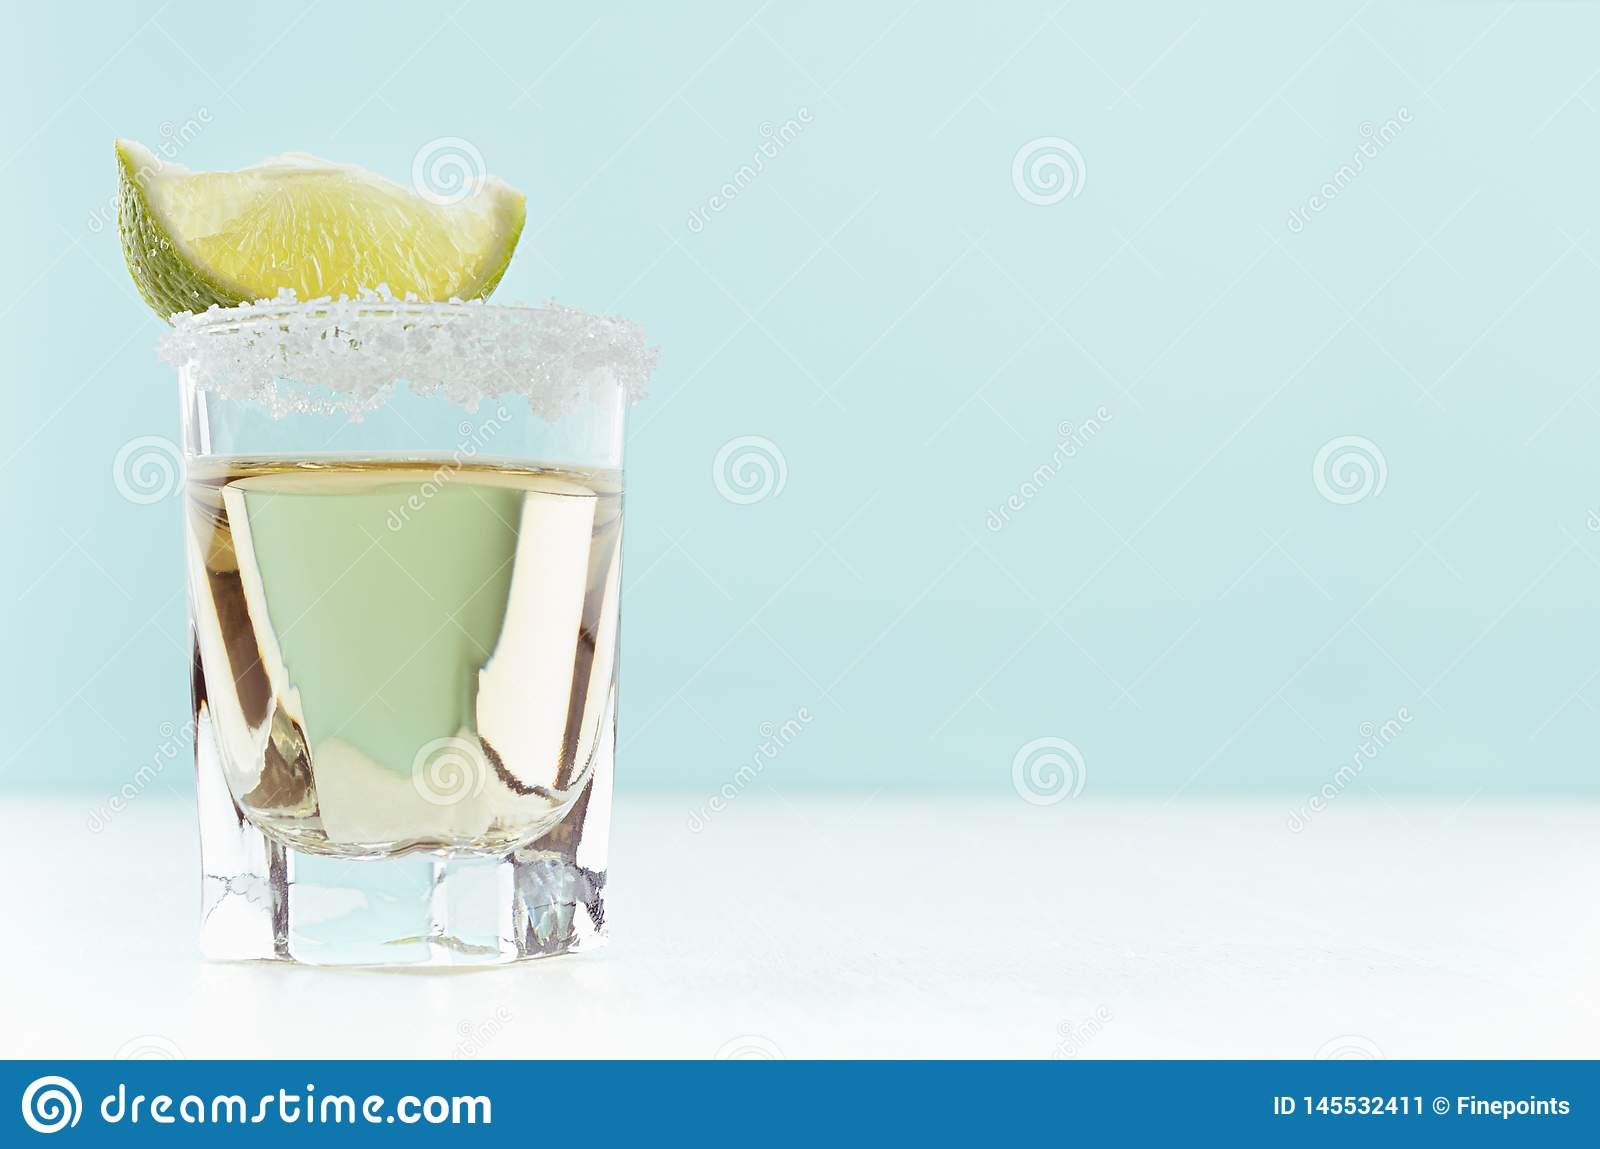 Fresh exquisite shot drink of gold tequila with salt rim and juicy piece green lime closeup in soft light mint color bar interior.